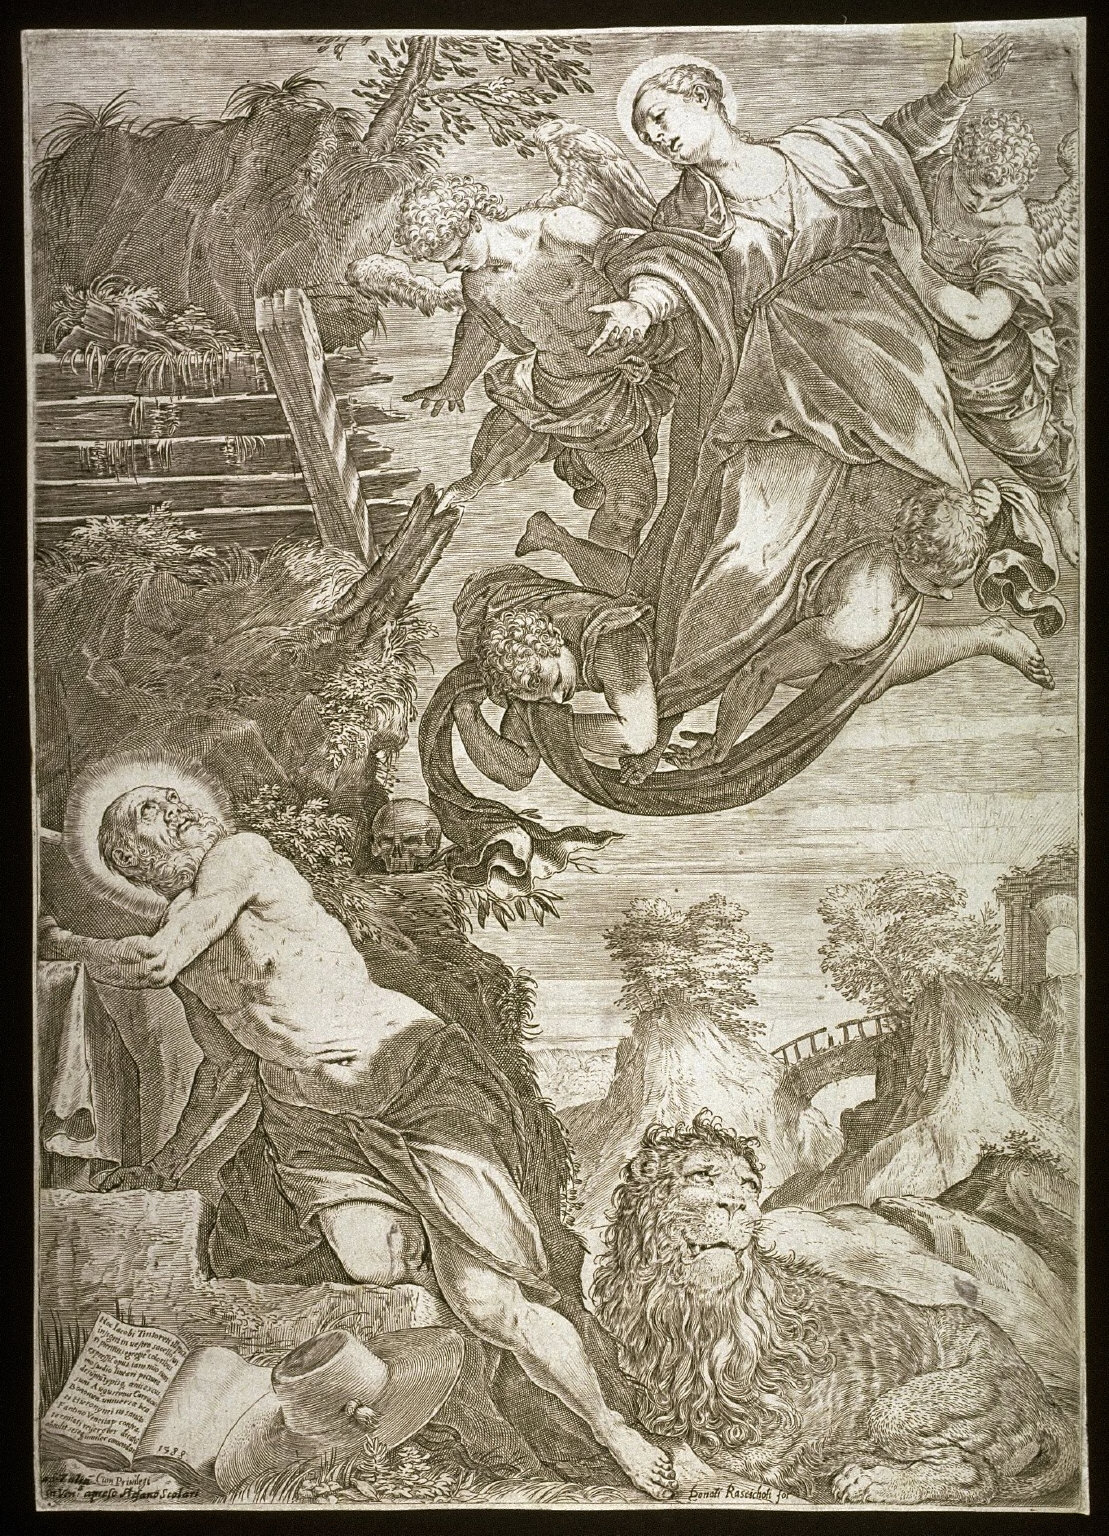 The Madonna Appearing to St. Jerome, after a painting by Tintoretto (Accademia, Venice)